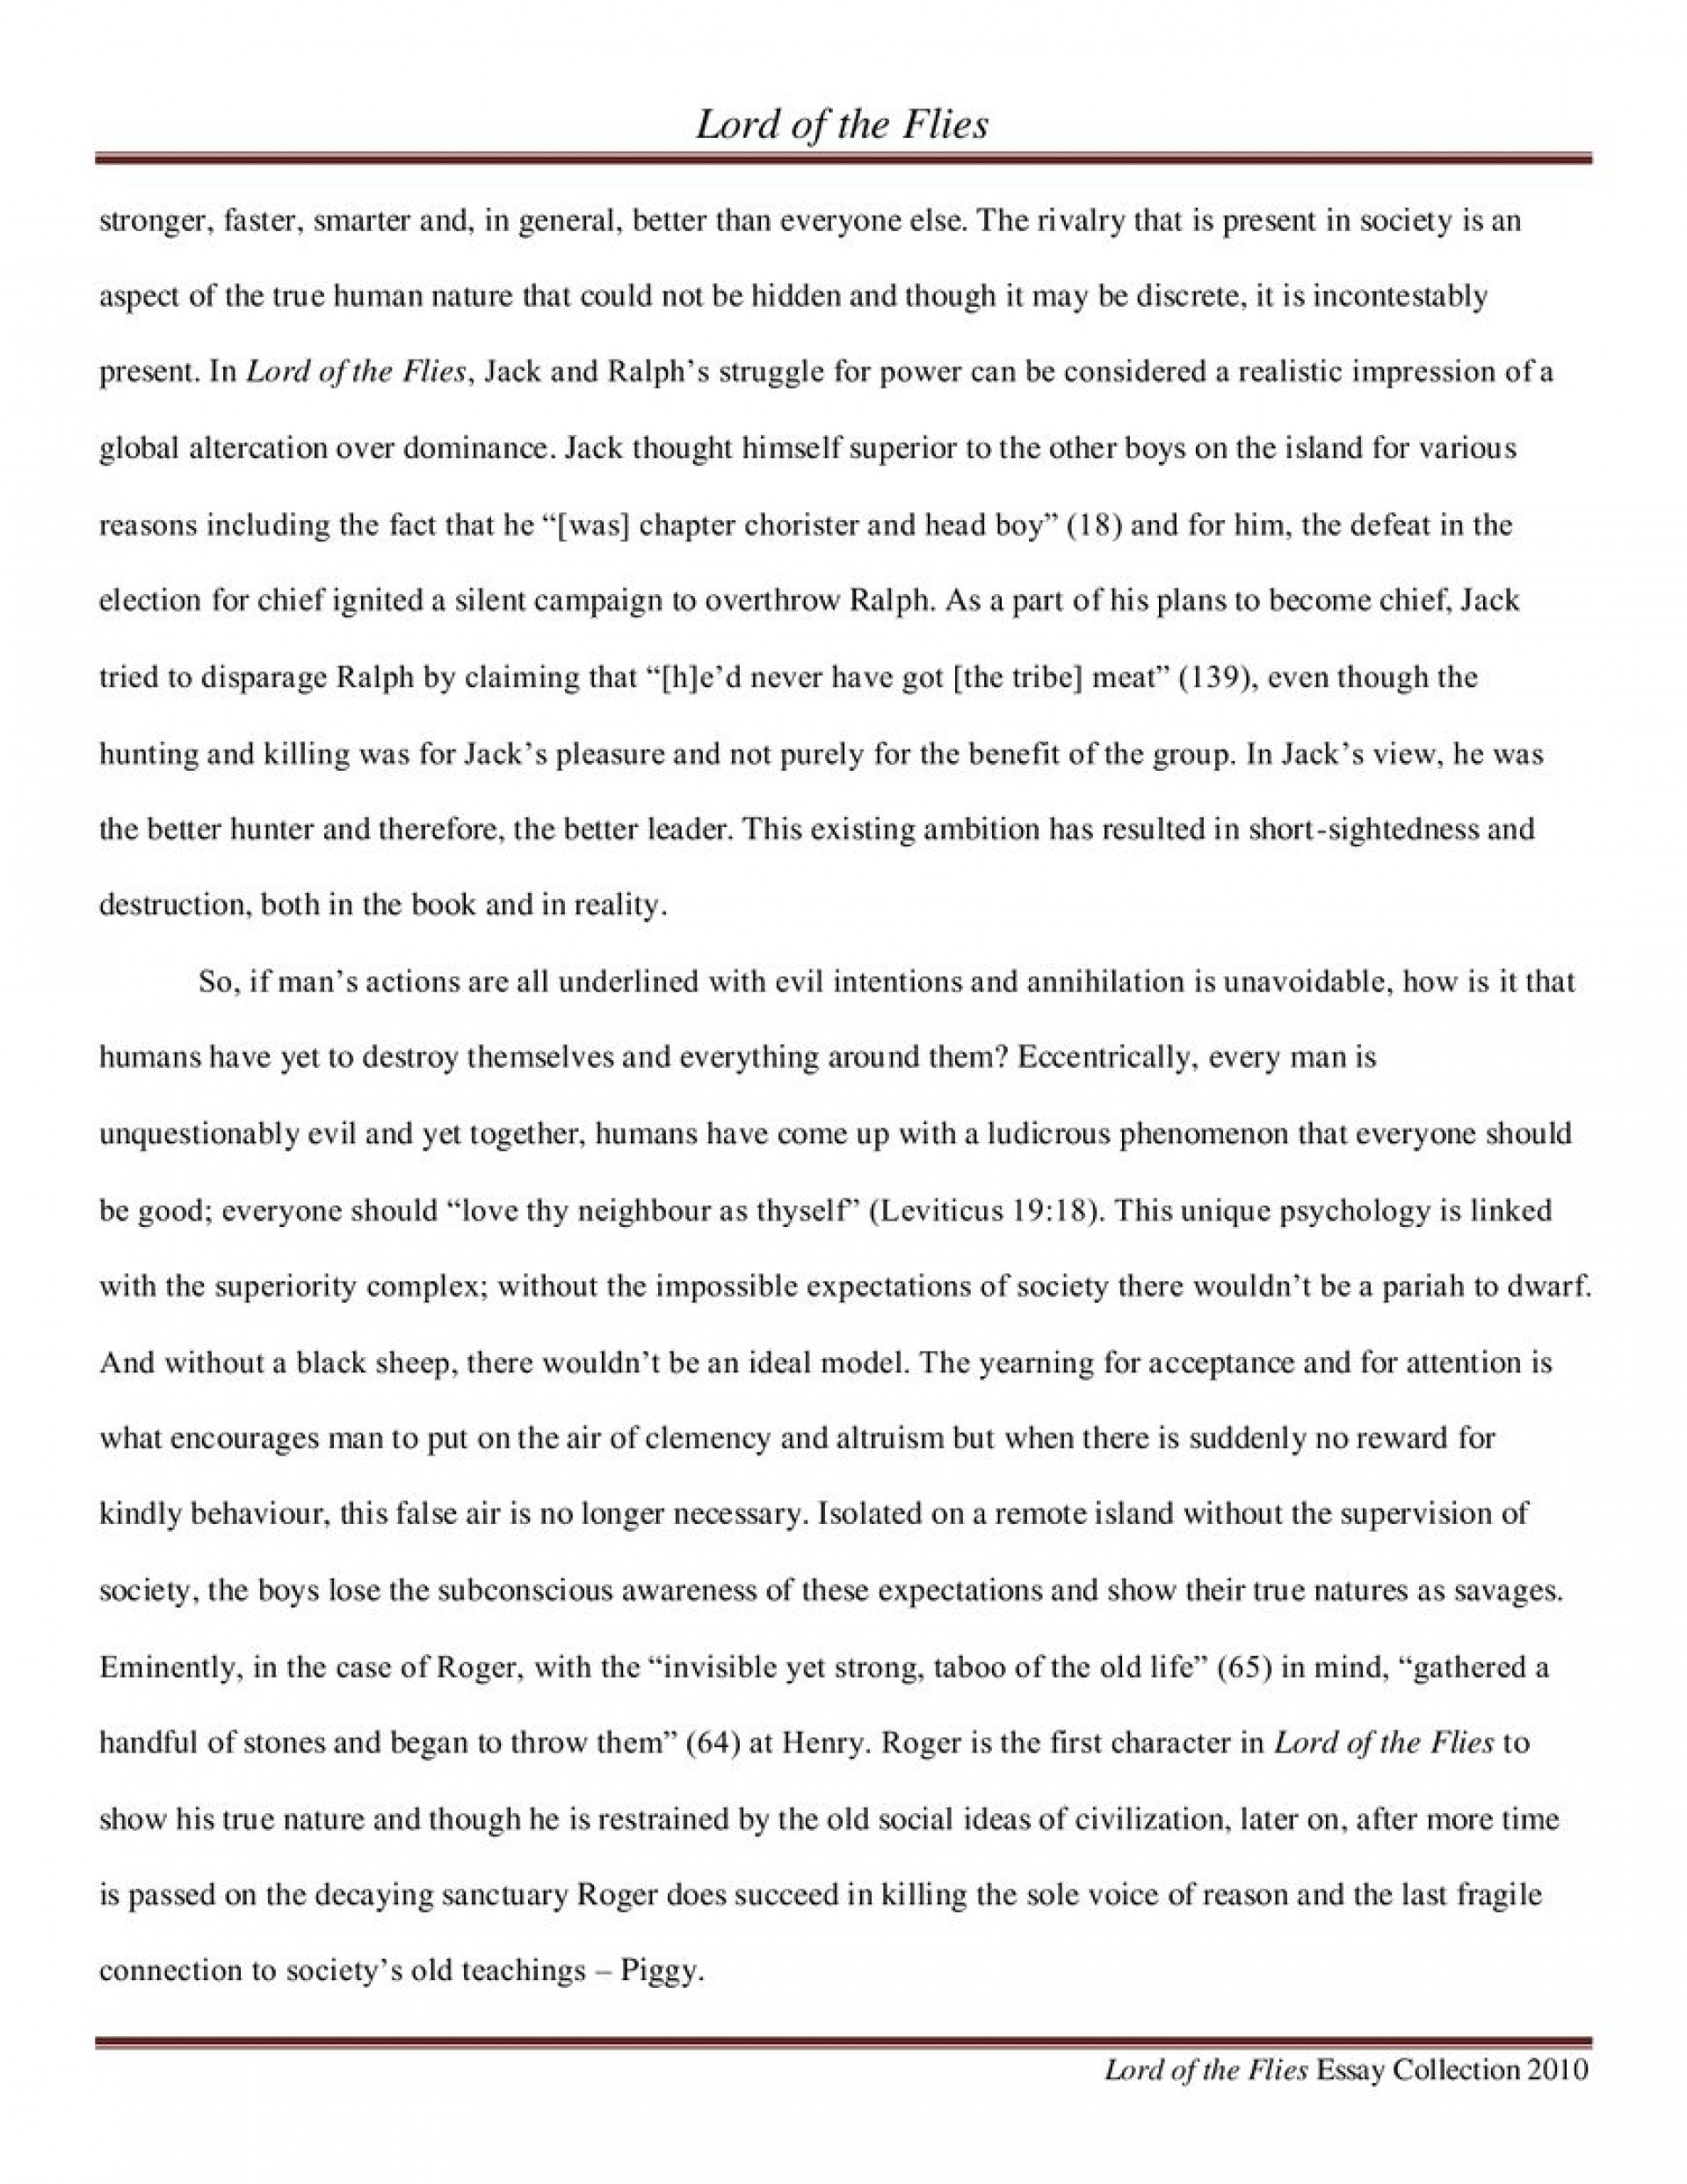 011 Essay Example Collection Large Shocking Collections For Students 2017 Best Pdf 1920